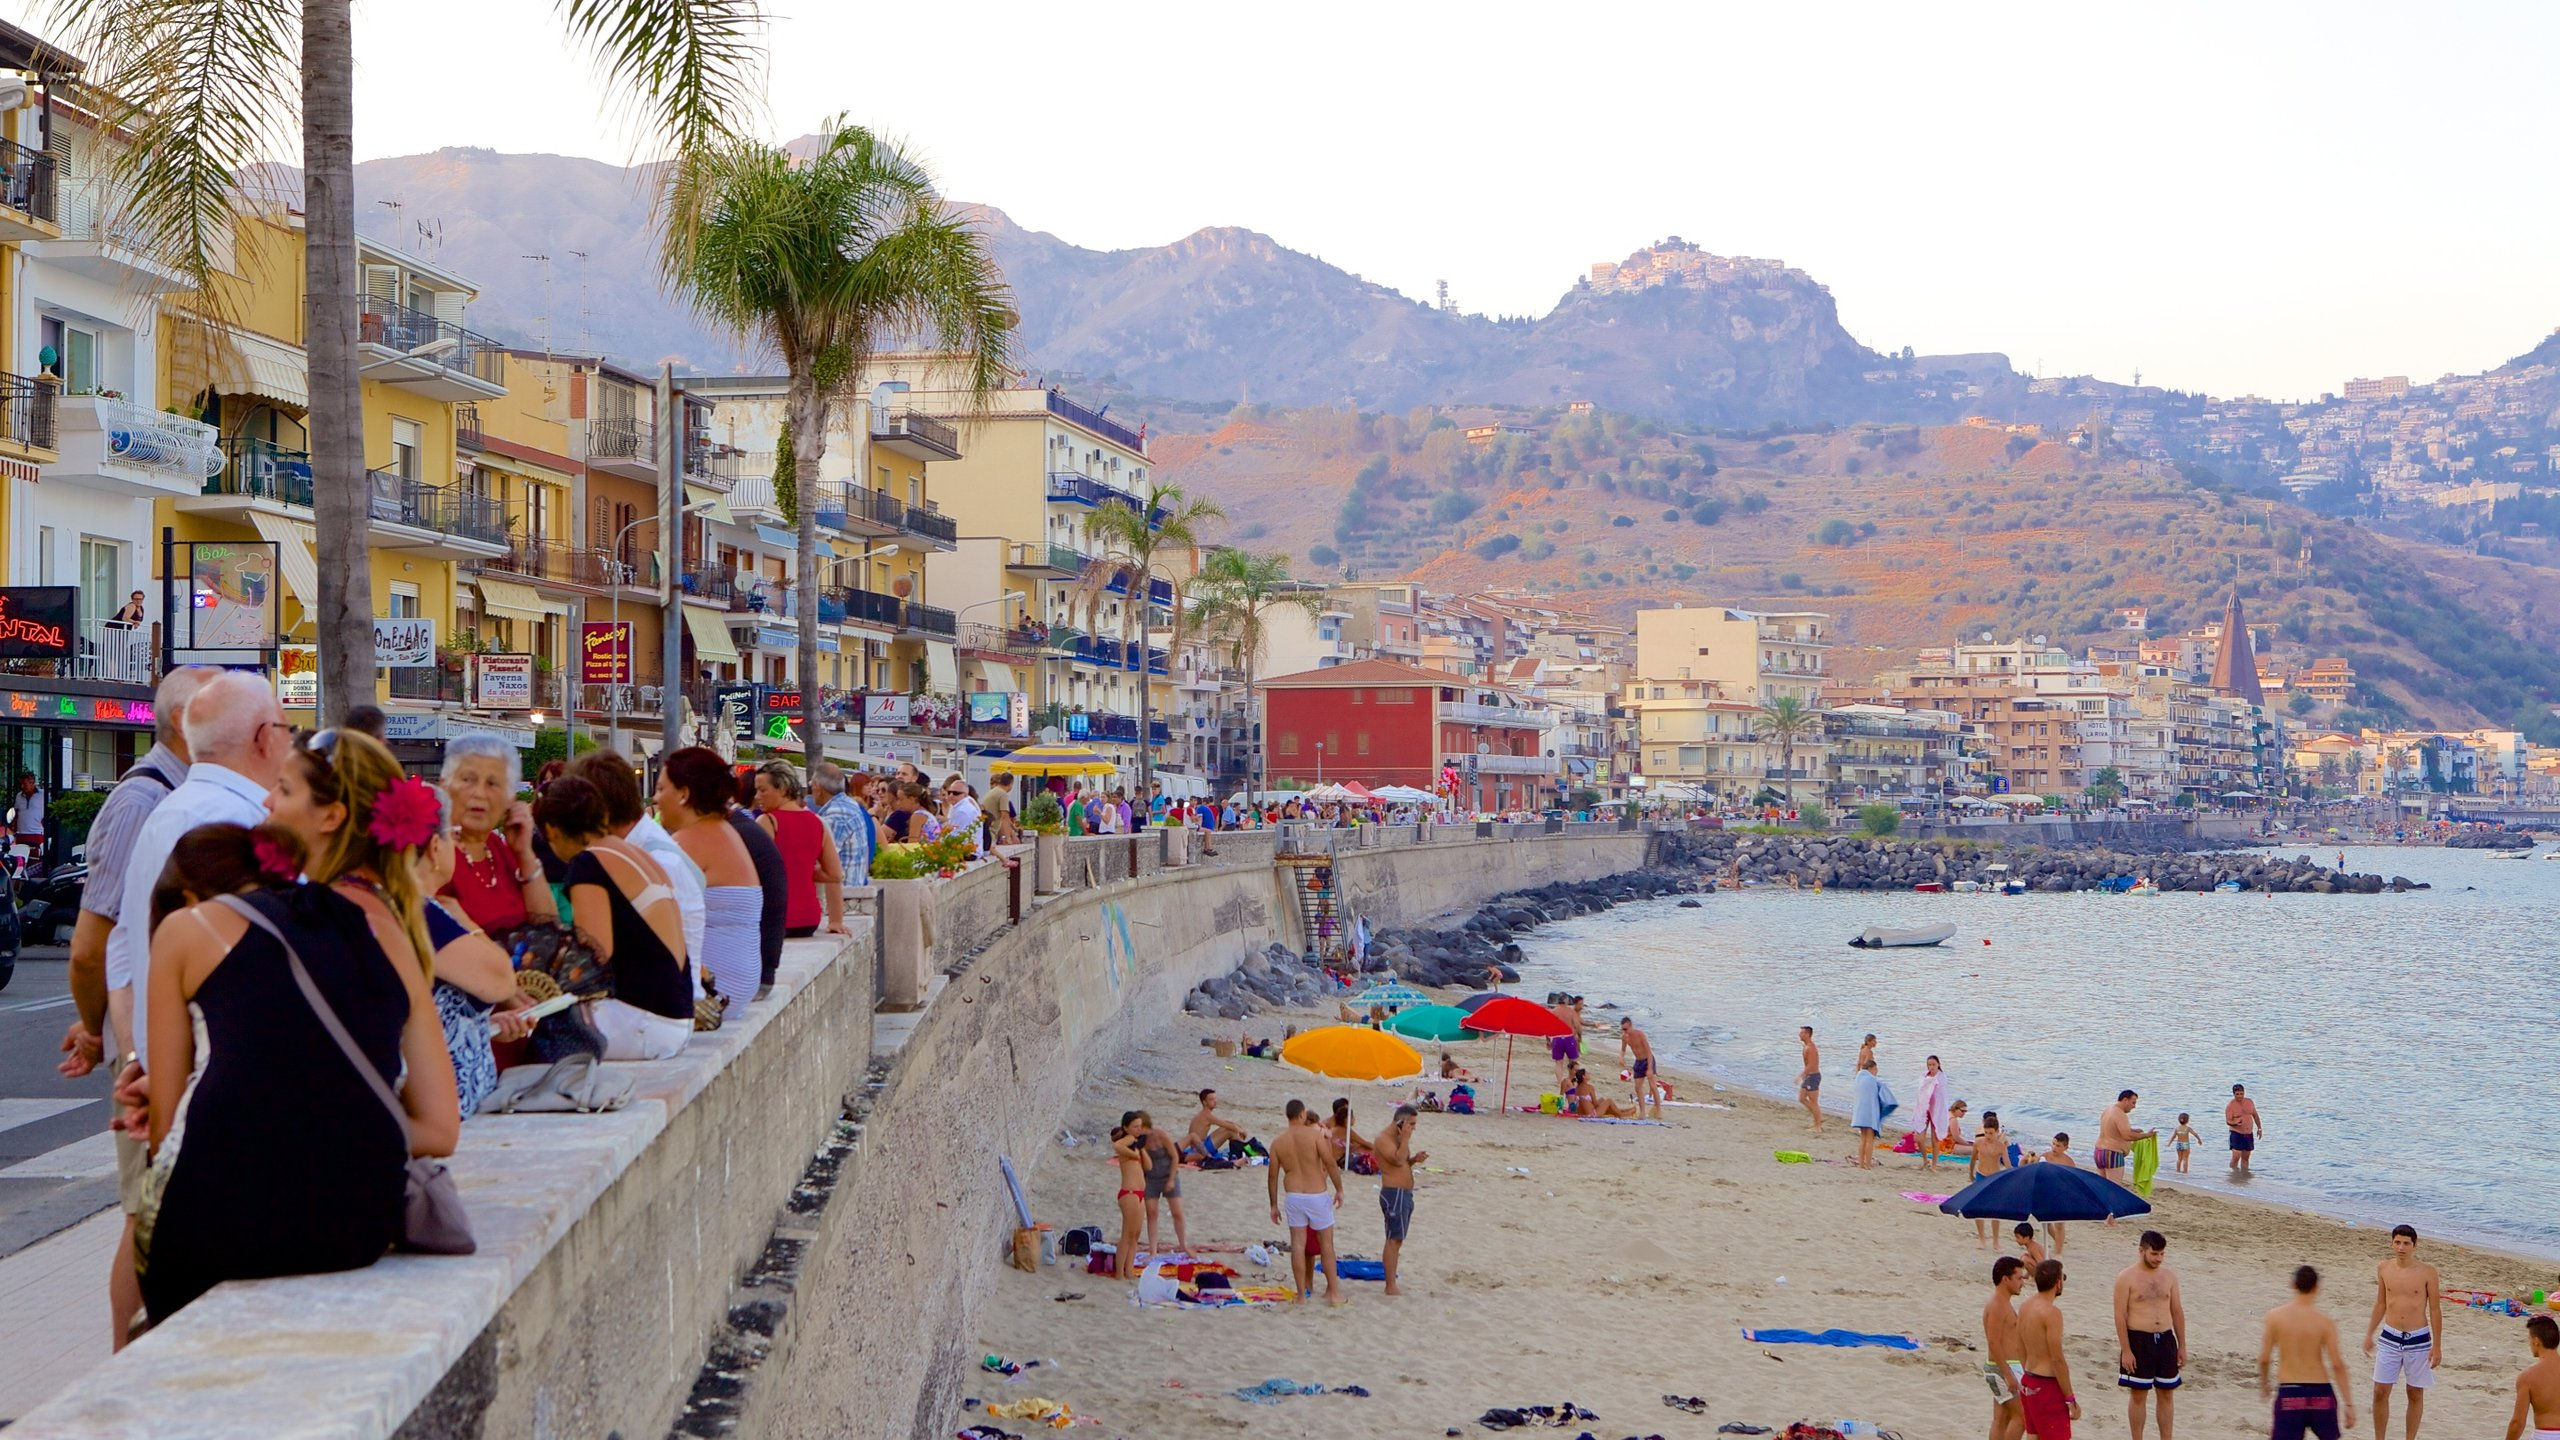 Top Hotels In Giardini Naxos From 66 Free Cancellation On Select